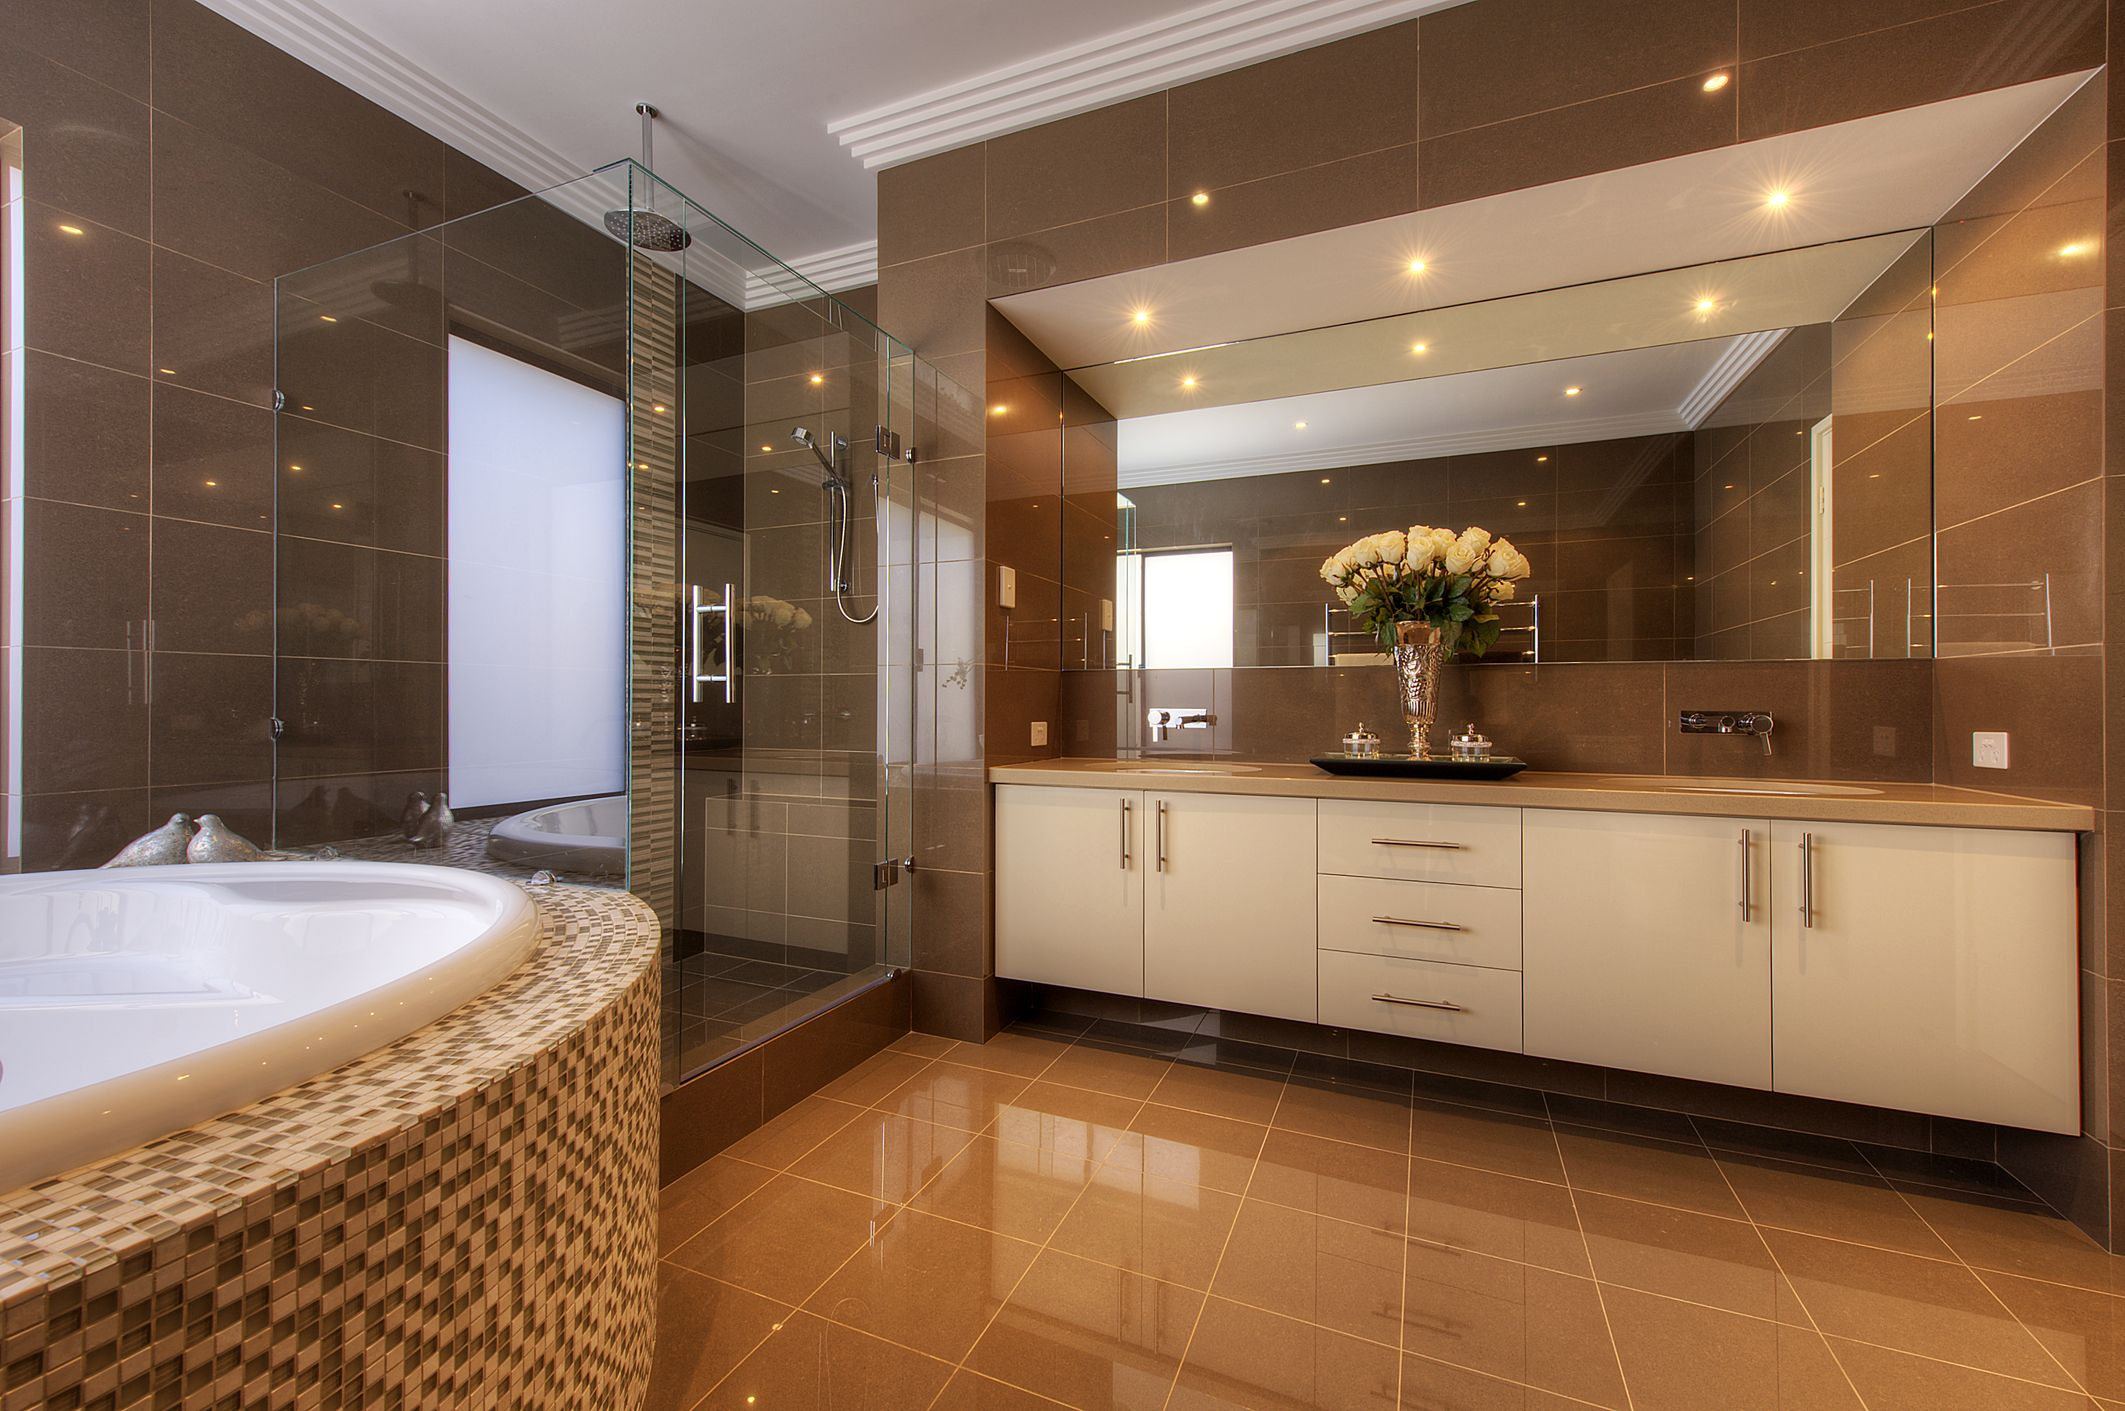 Luxury Bathrooms Unique Design 1 Room Design Ideas